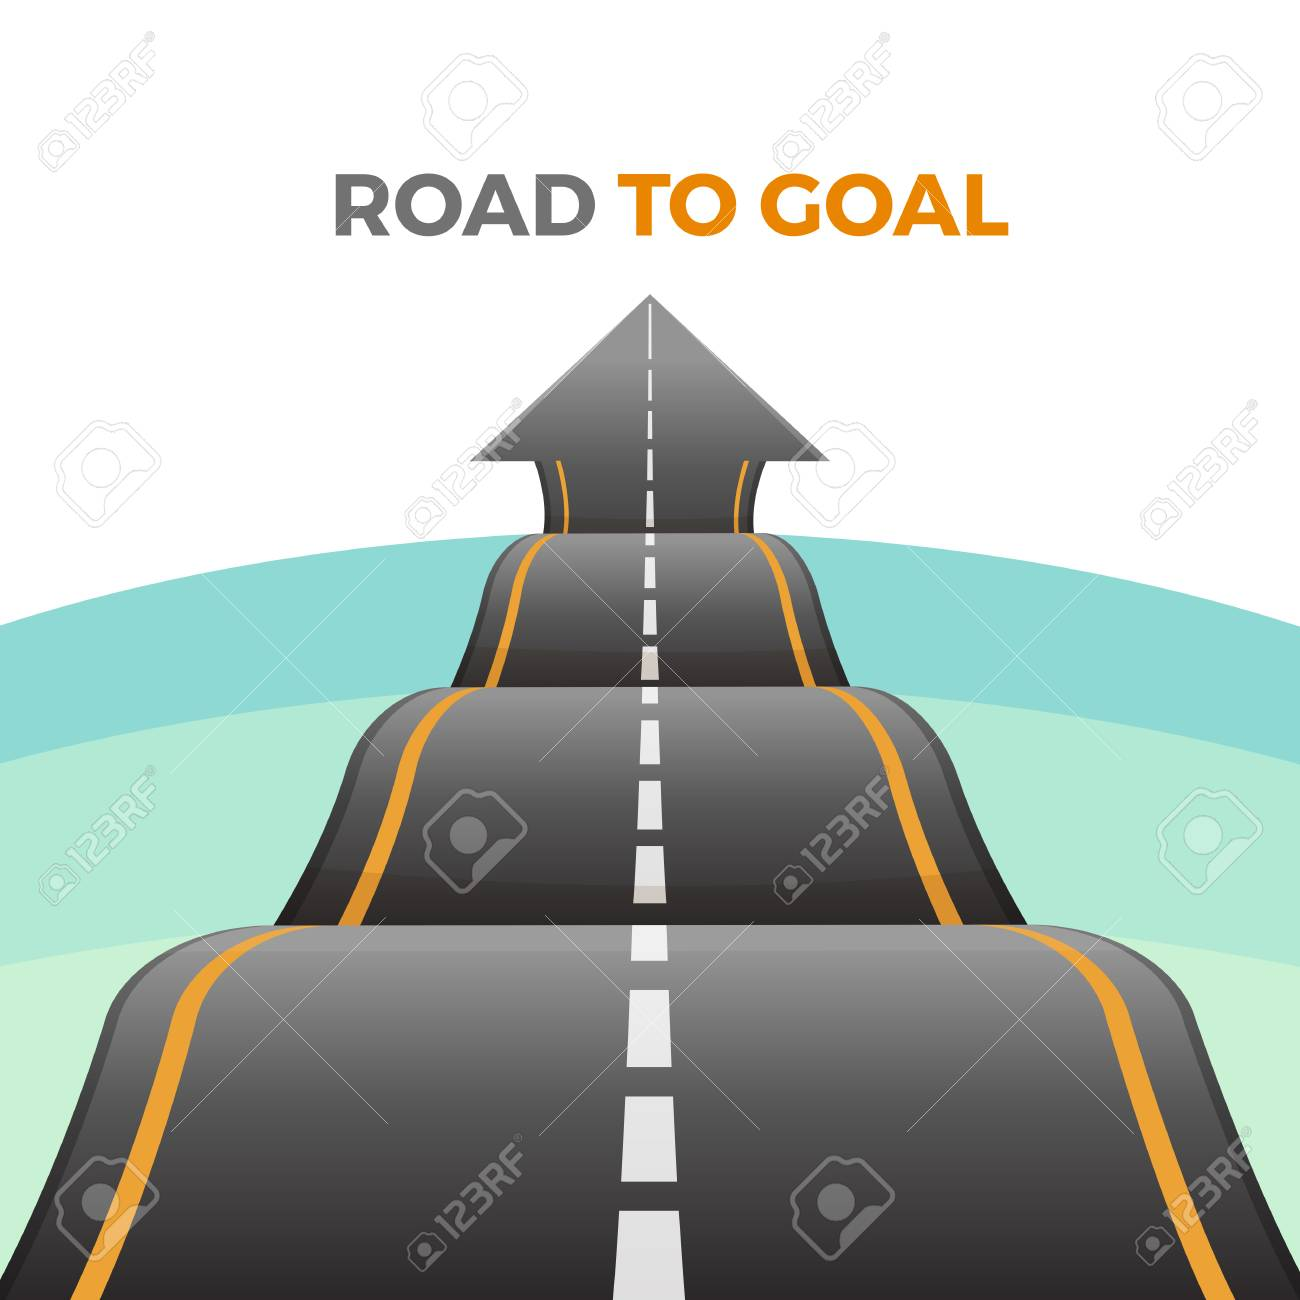 Road to goal abstract way from asphalt with marking vector - 90304990